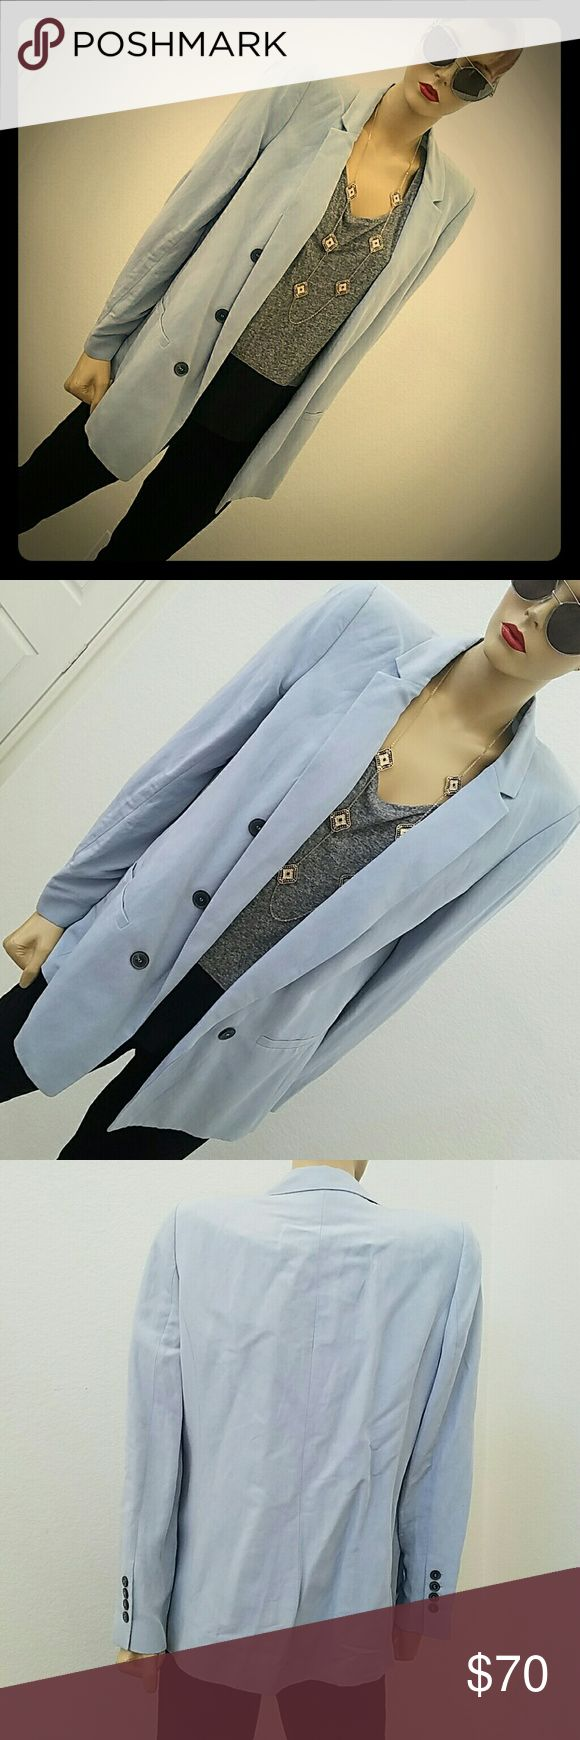 ZARA Light blue blazer Has decorative buttons on the front but are not functional.  Shoulders are lightly padded. Very light fabric.  Has white lining. Never worn tags are still on. Jackets & Coats Blazers